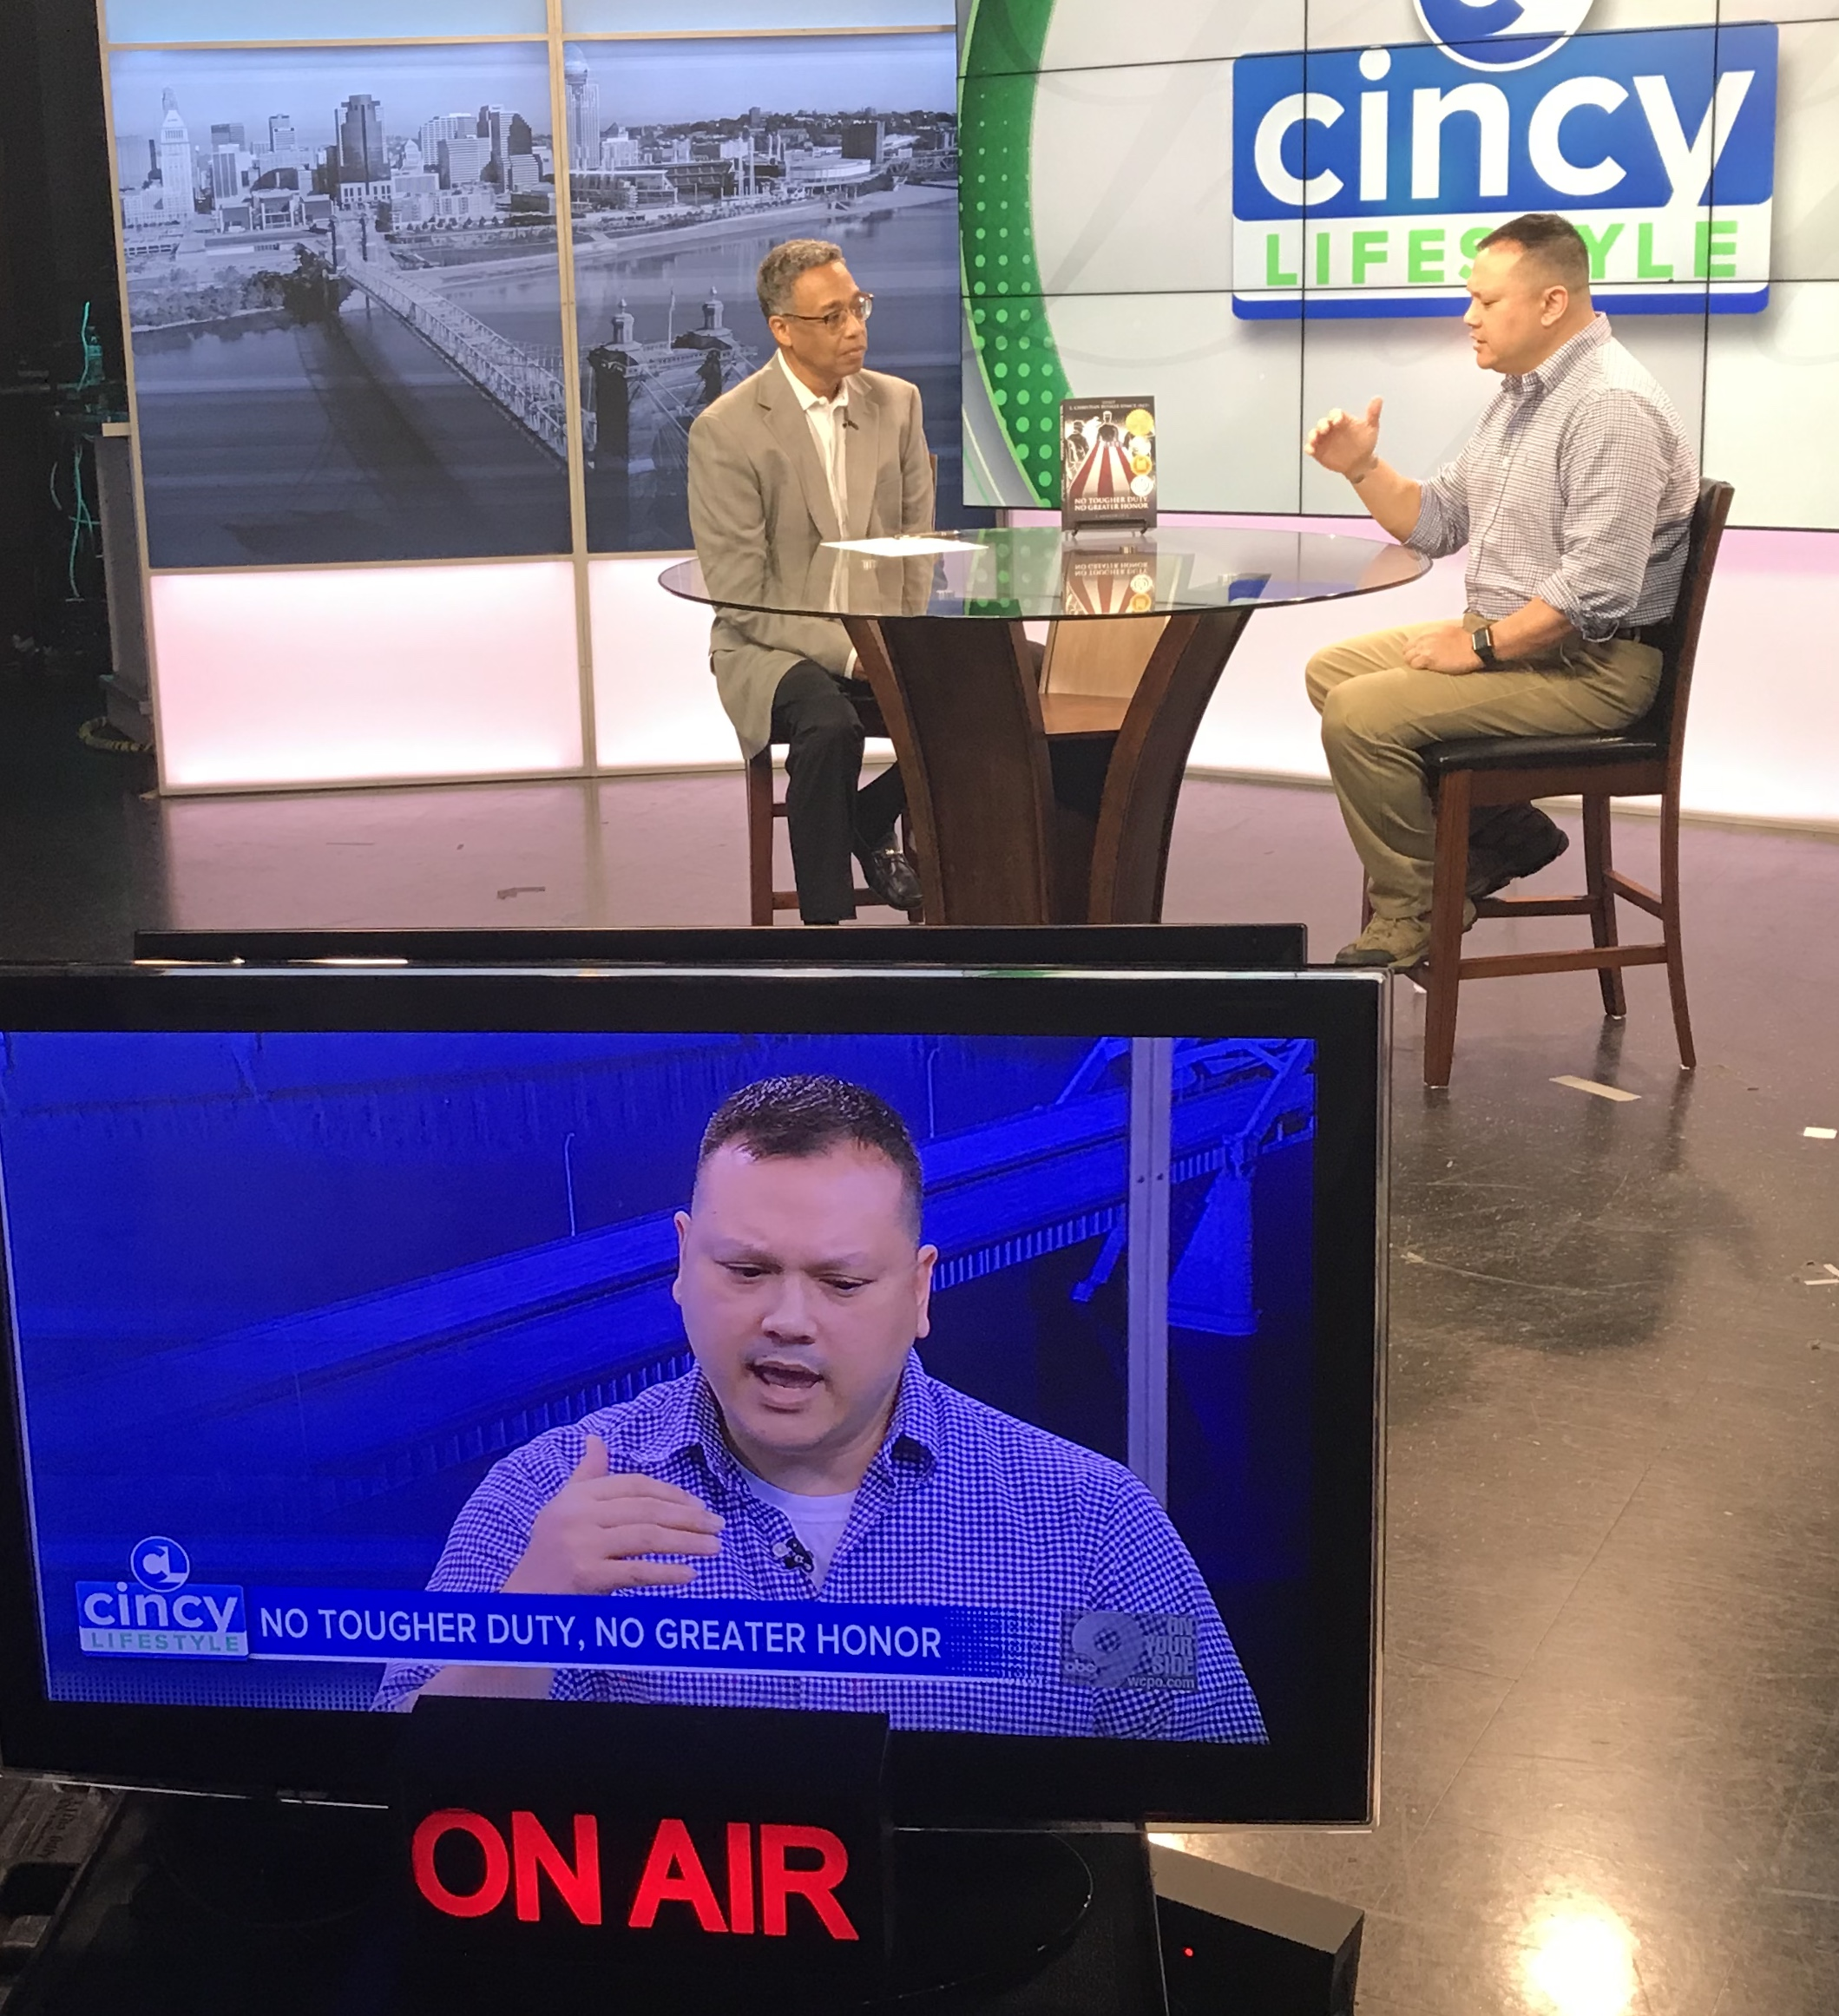 Interview with news anchor Clyde Gray on Cincy Lifestyle WCPO Channel 9